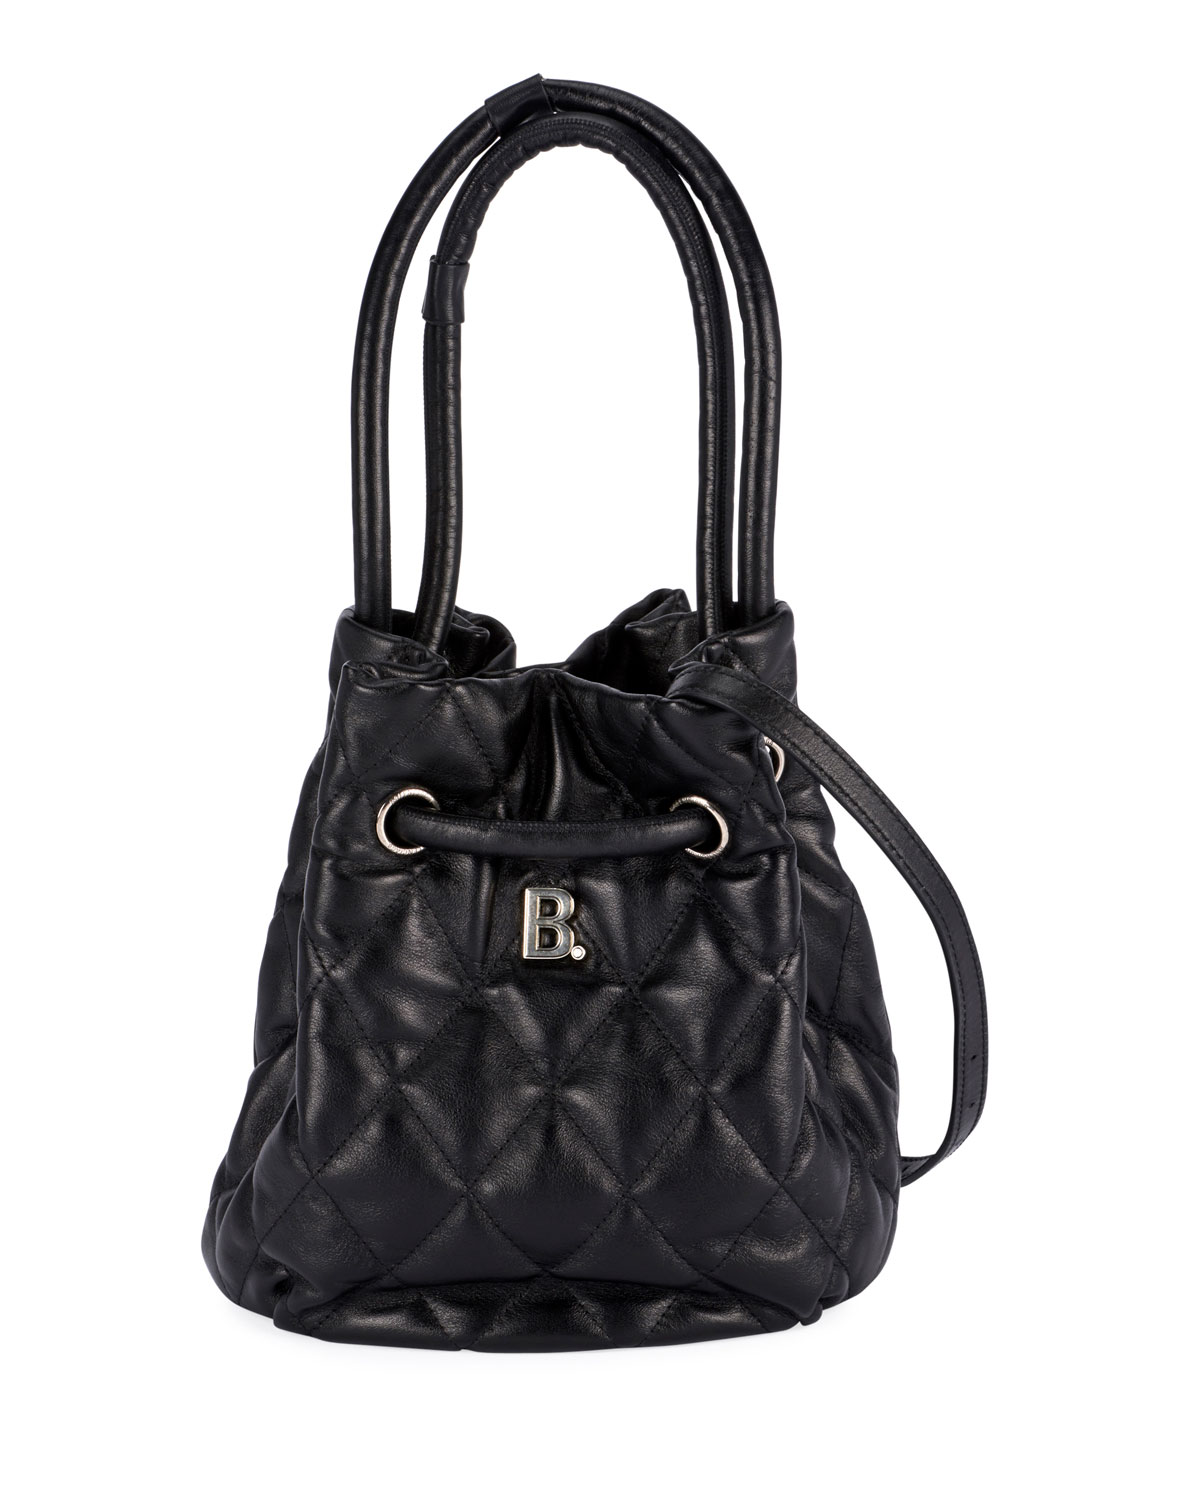 Balenciaga Small B Quilted Leather Bucket Bag In Black